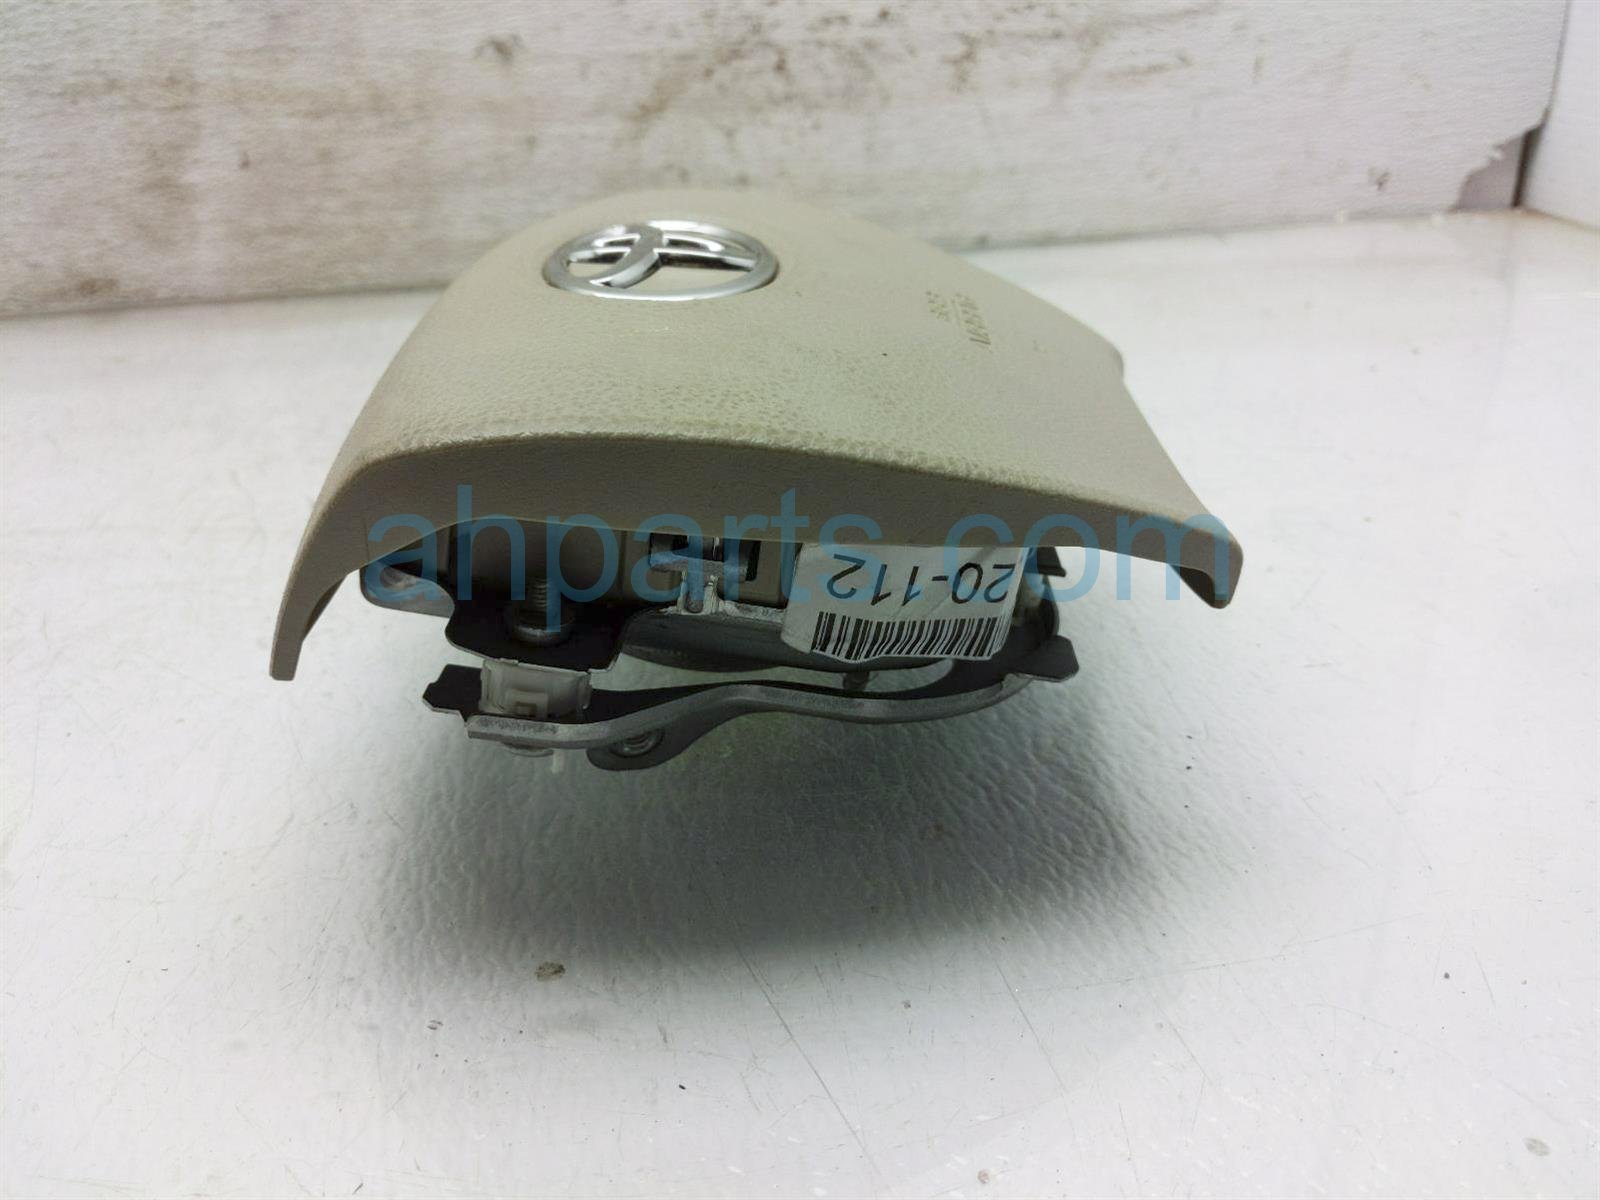 2013 Toyota Sienna Driver Wheel Airbag   Tan 45130 08080 E0 Replacement